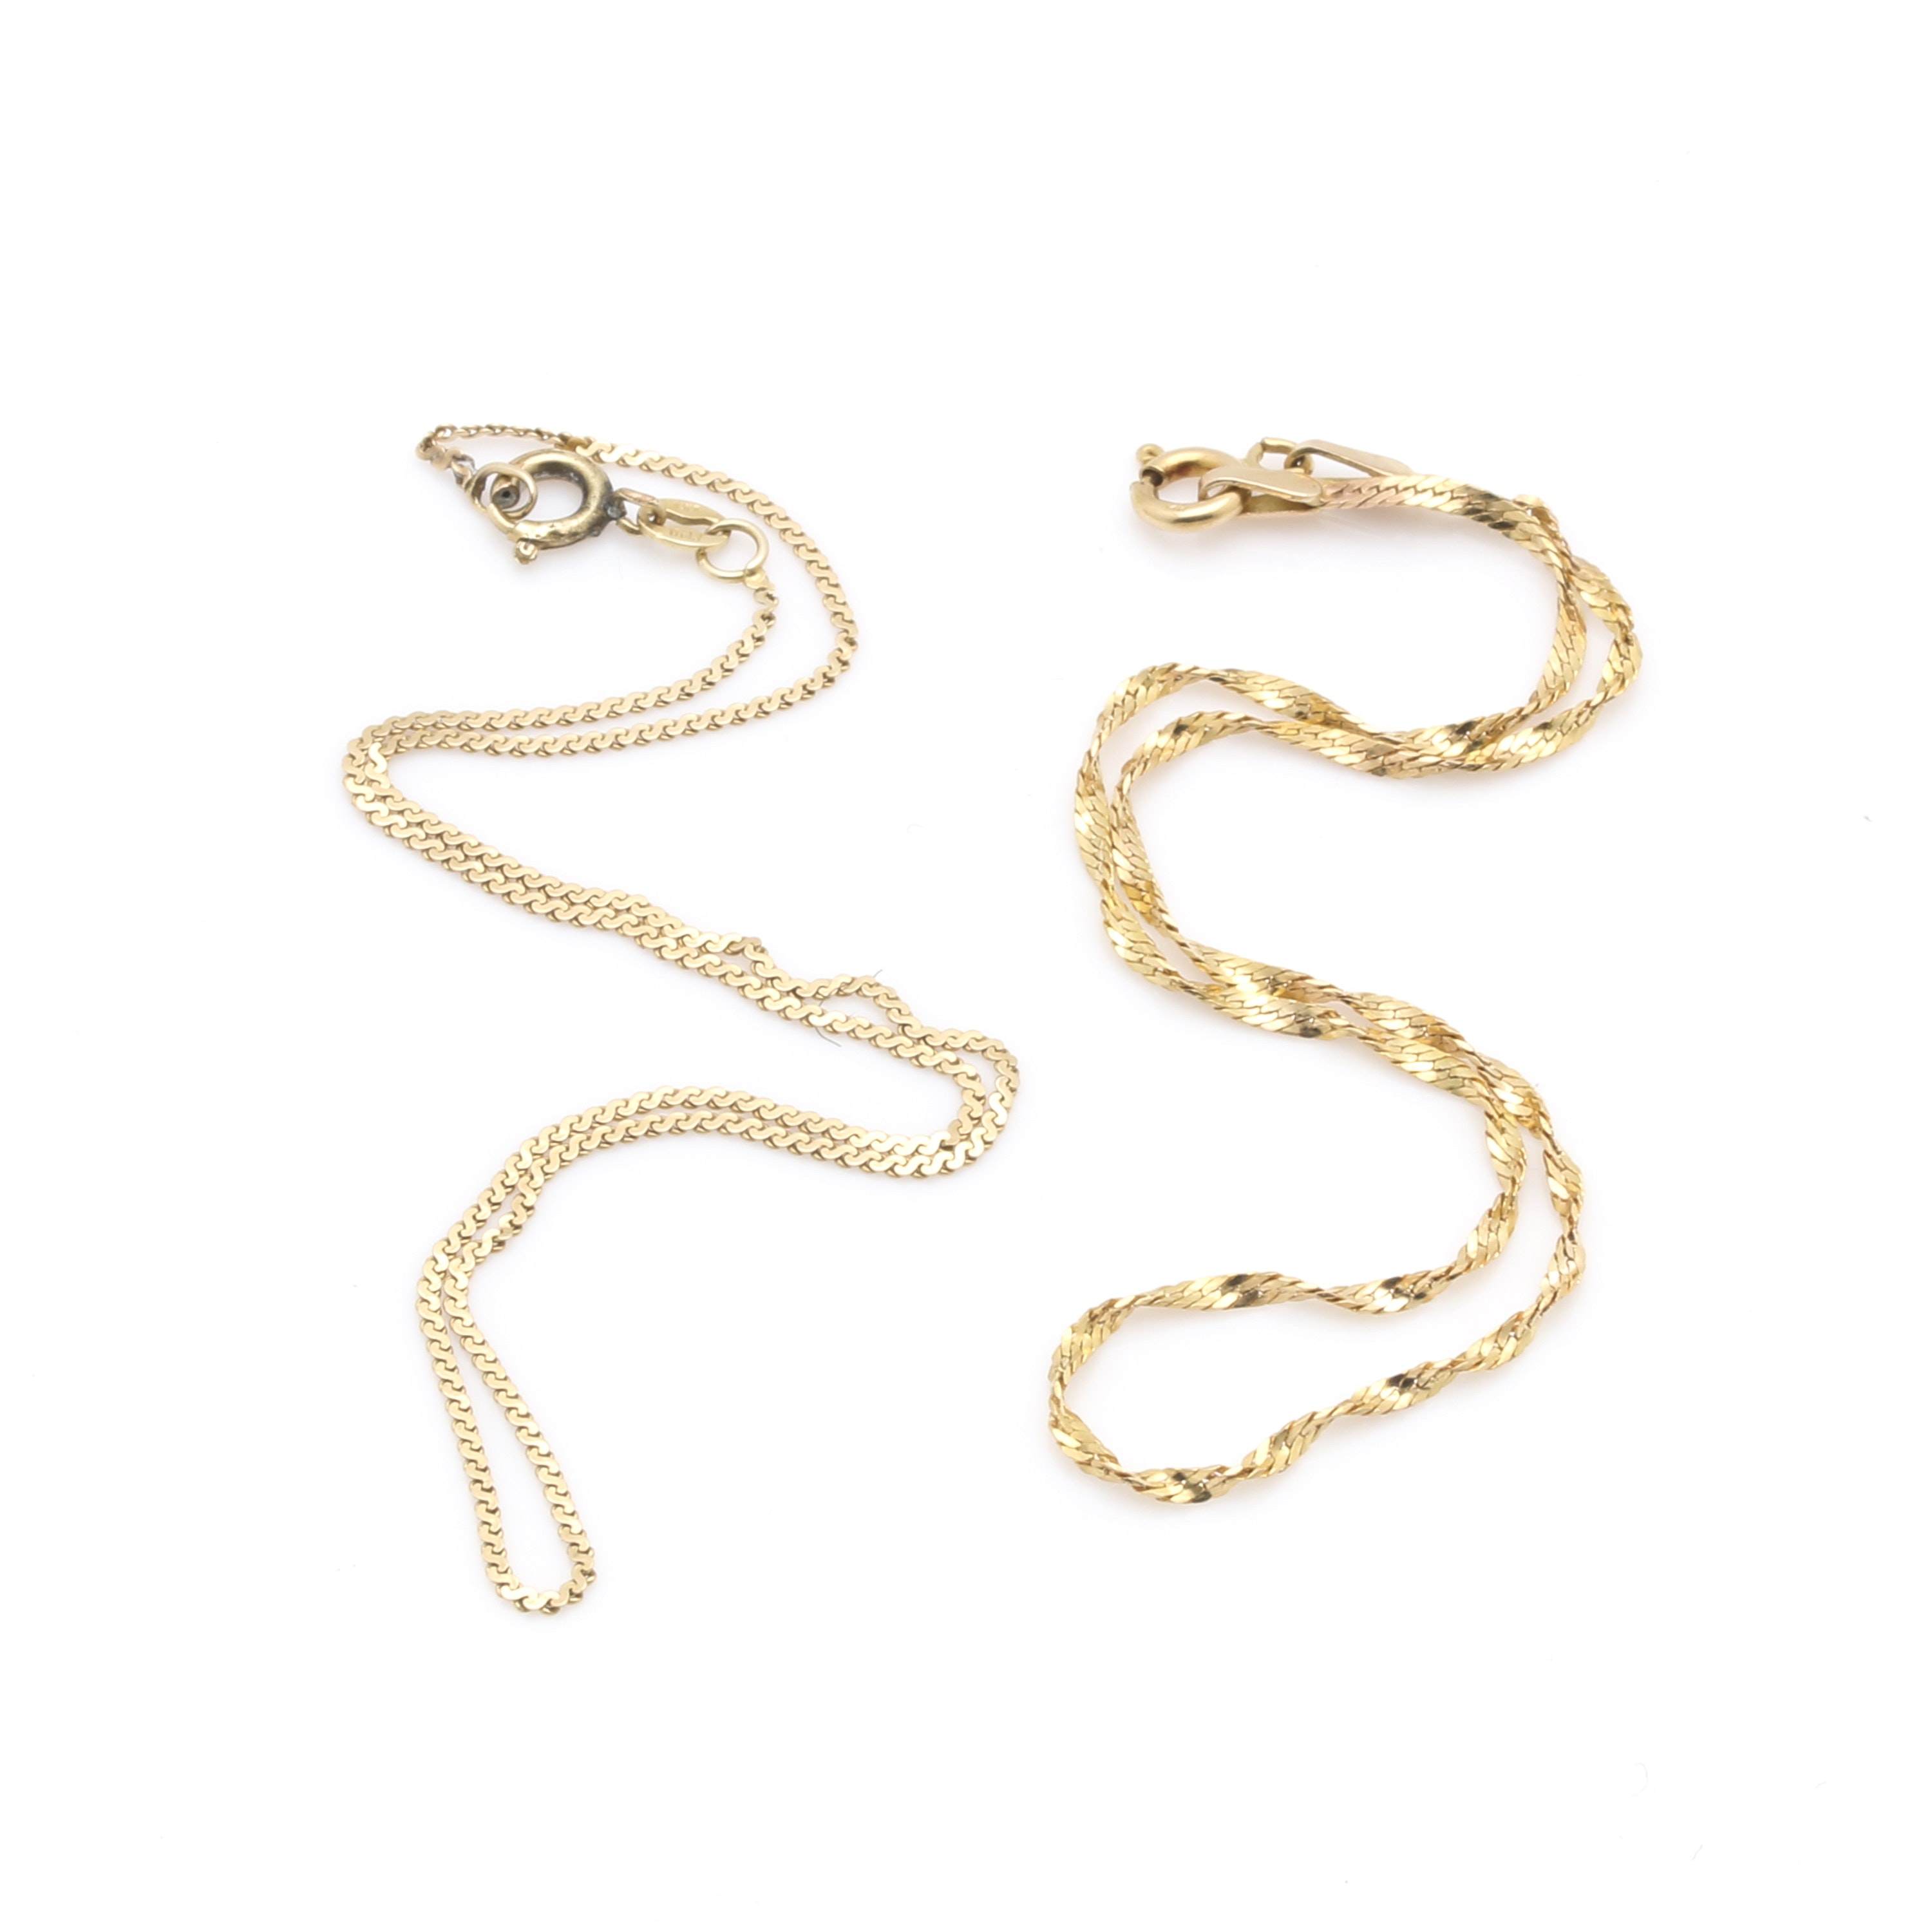 14K Yellow Gold S-Link and Twisted Curb Chain Bracelets